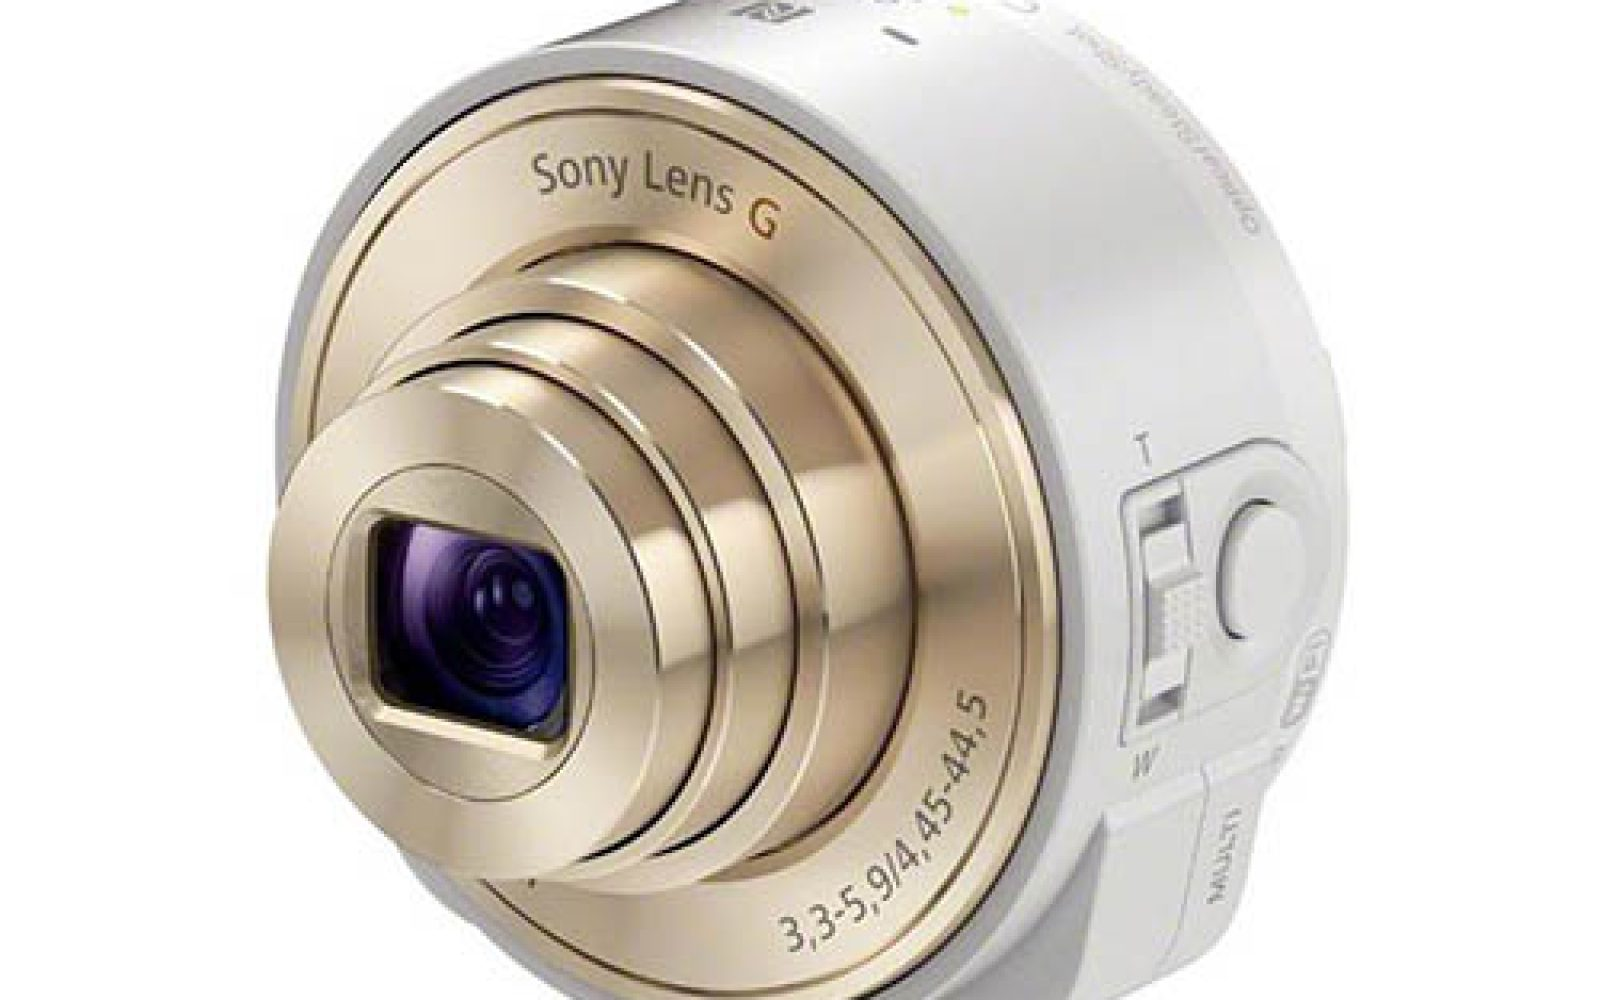 Sony's Smartshot QX 'smart lens' will have a white and champagne color option, just in case